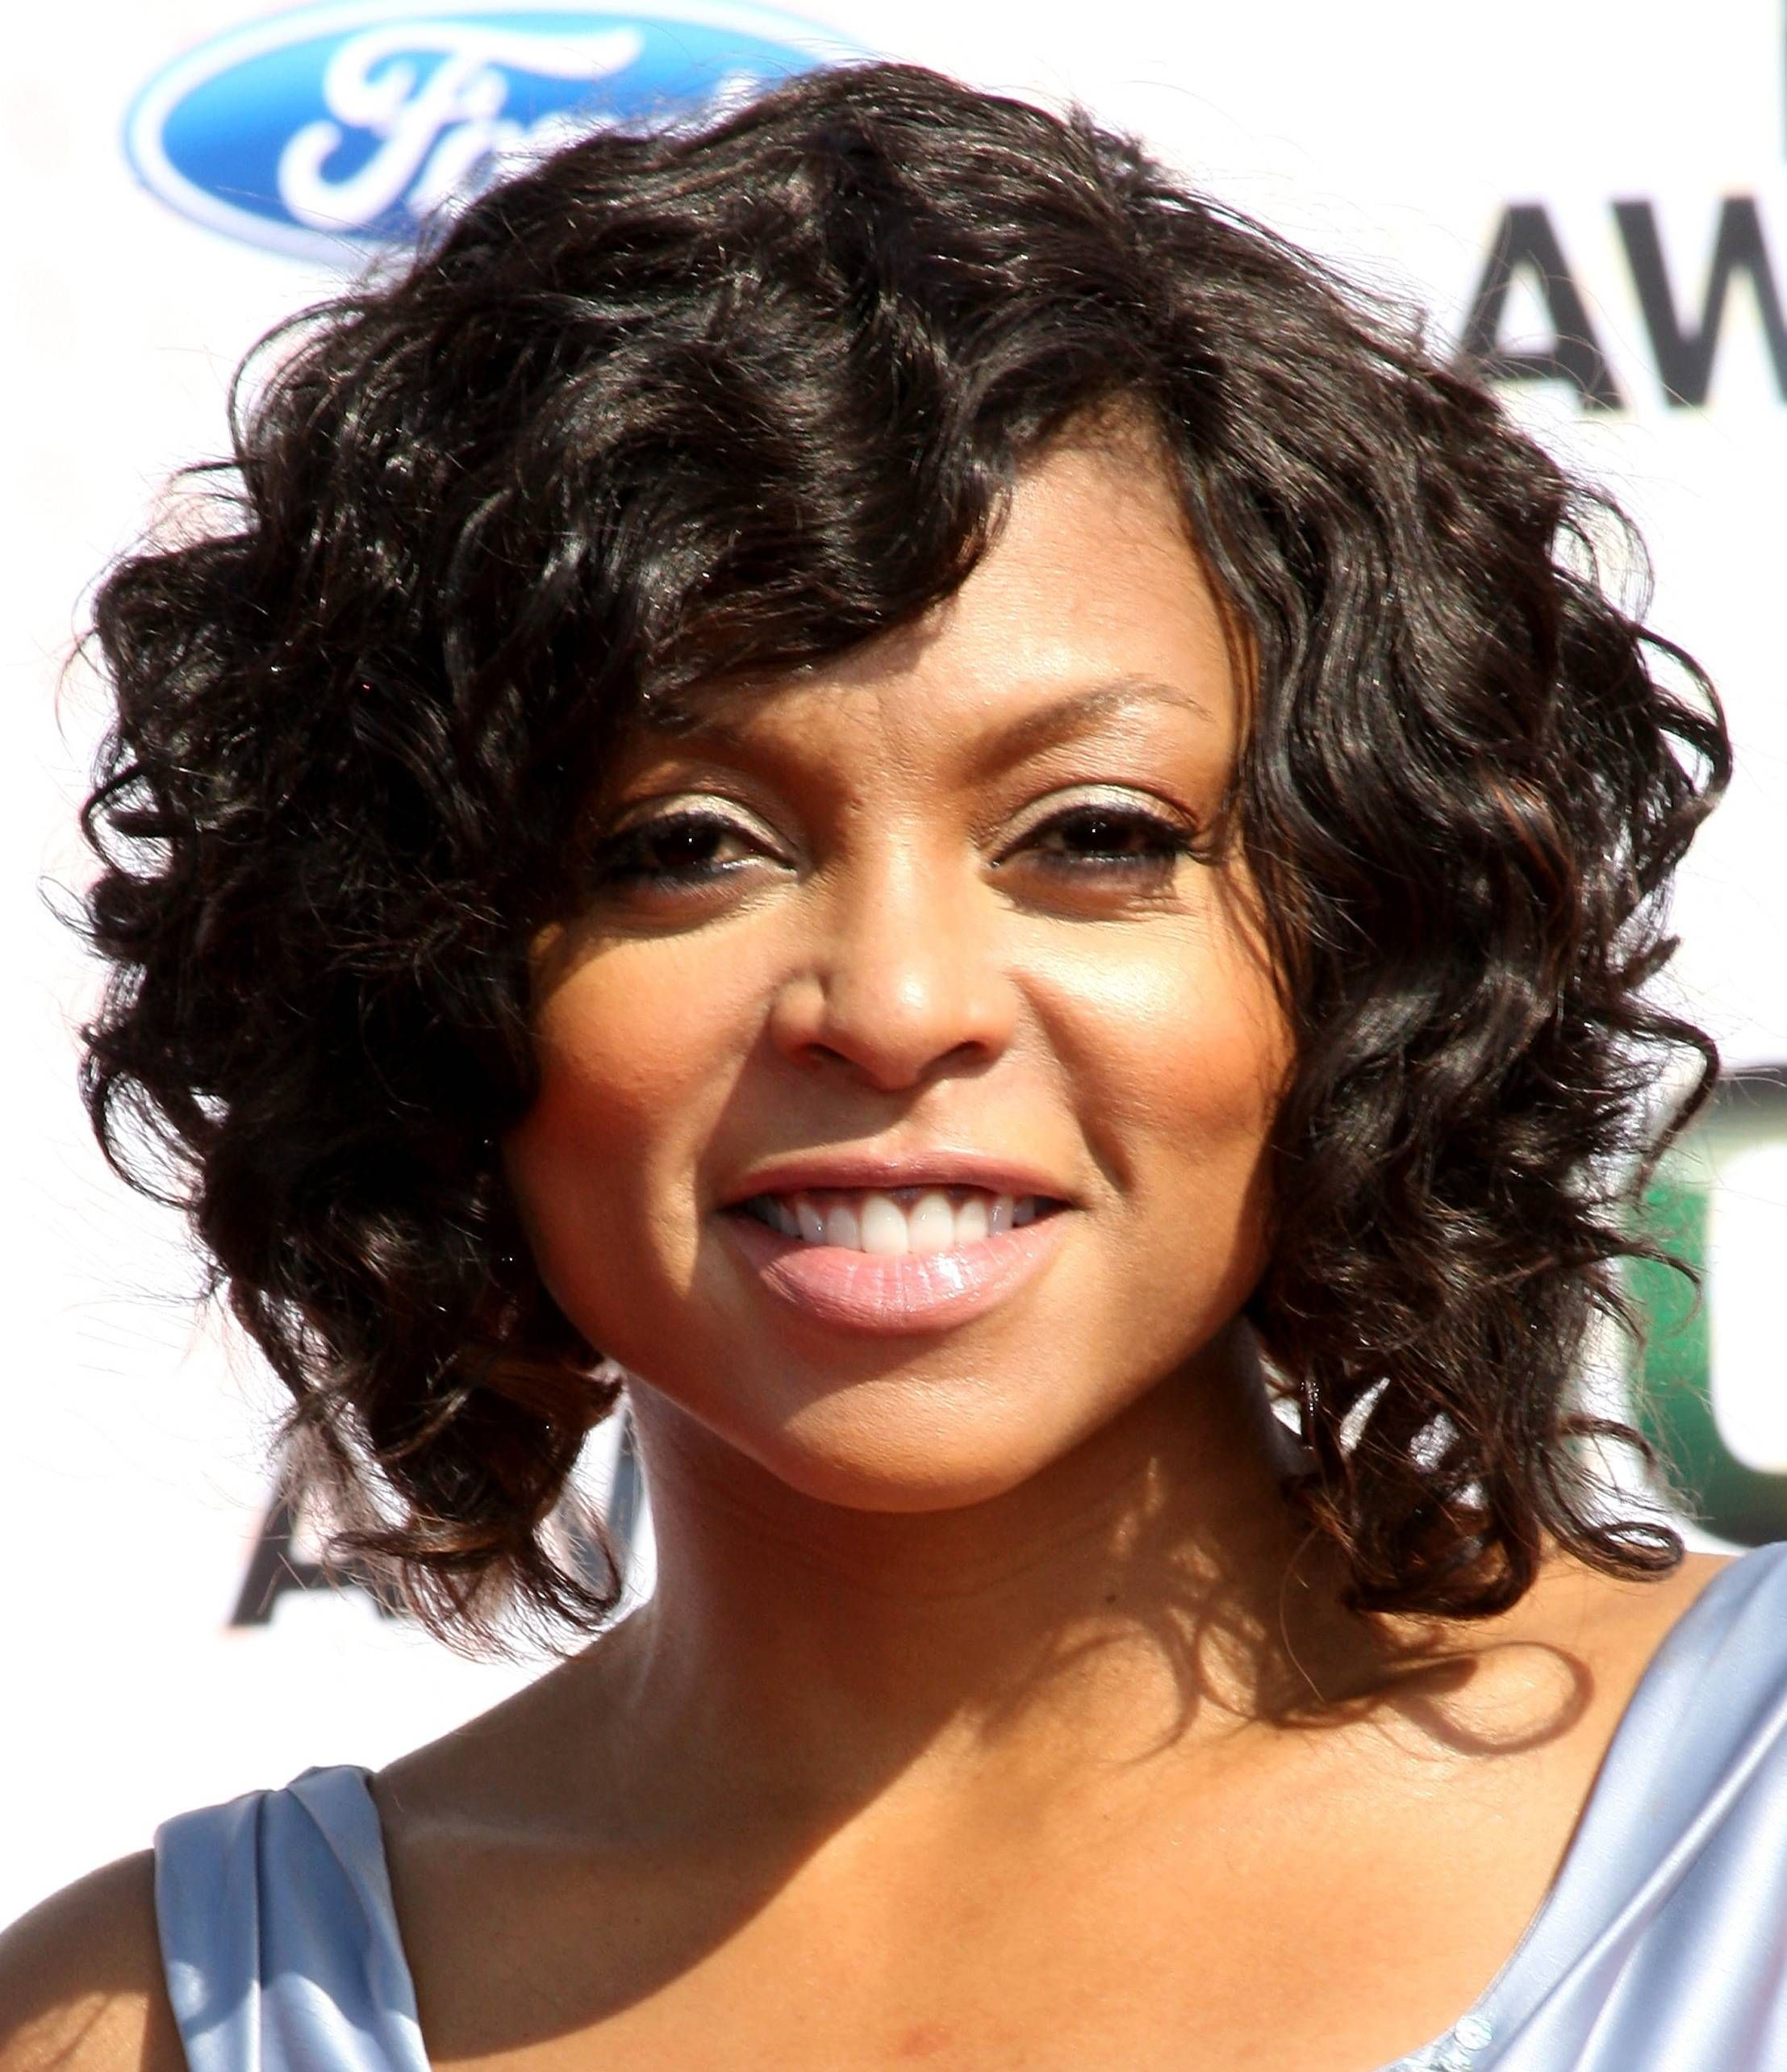 20 Photos Of Short And Curly Hair Done Right Curly Weave Hairstyles Short Hair Styles For Round Faces Short Curly Hairstyles For Women